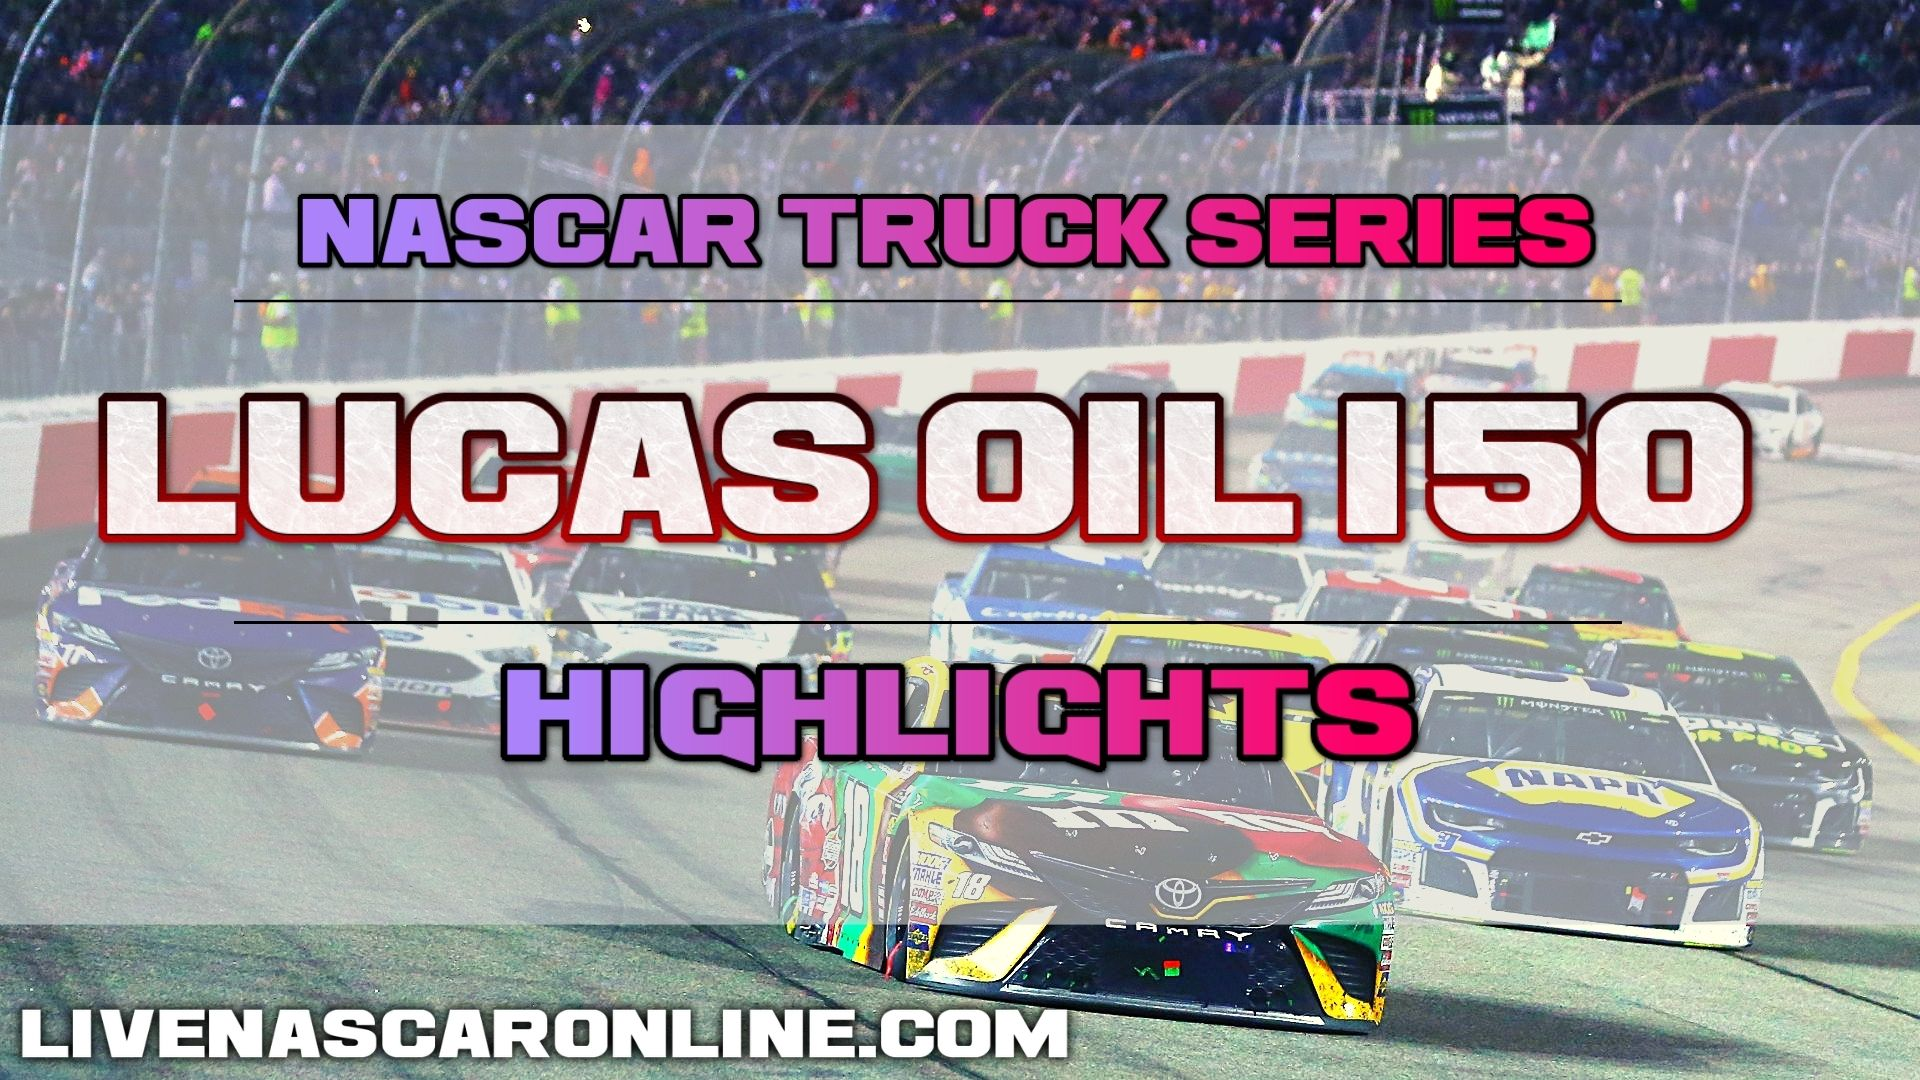 Lucas Oil 150 Highlights 2020 NASCAR Truck Series